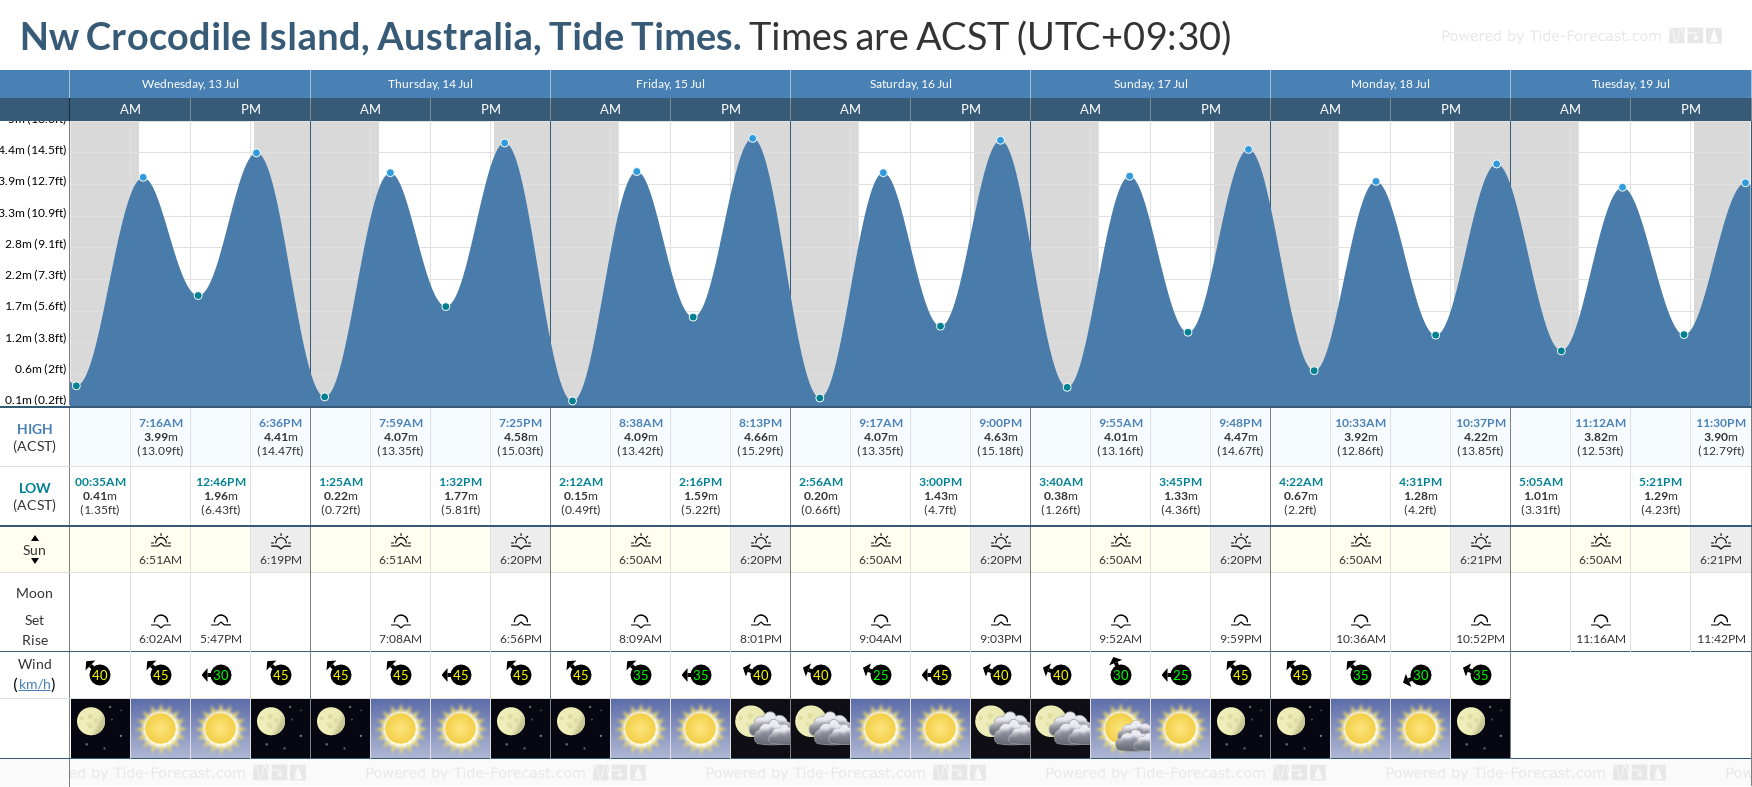 Nw Crocodile Island, Australia Tide Chart including high and low tide tide times for the next 7 days